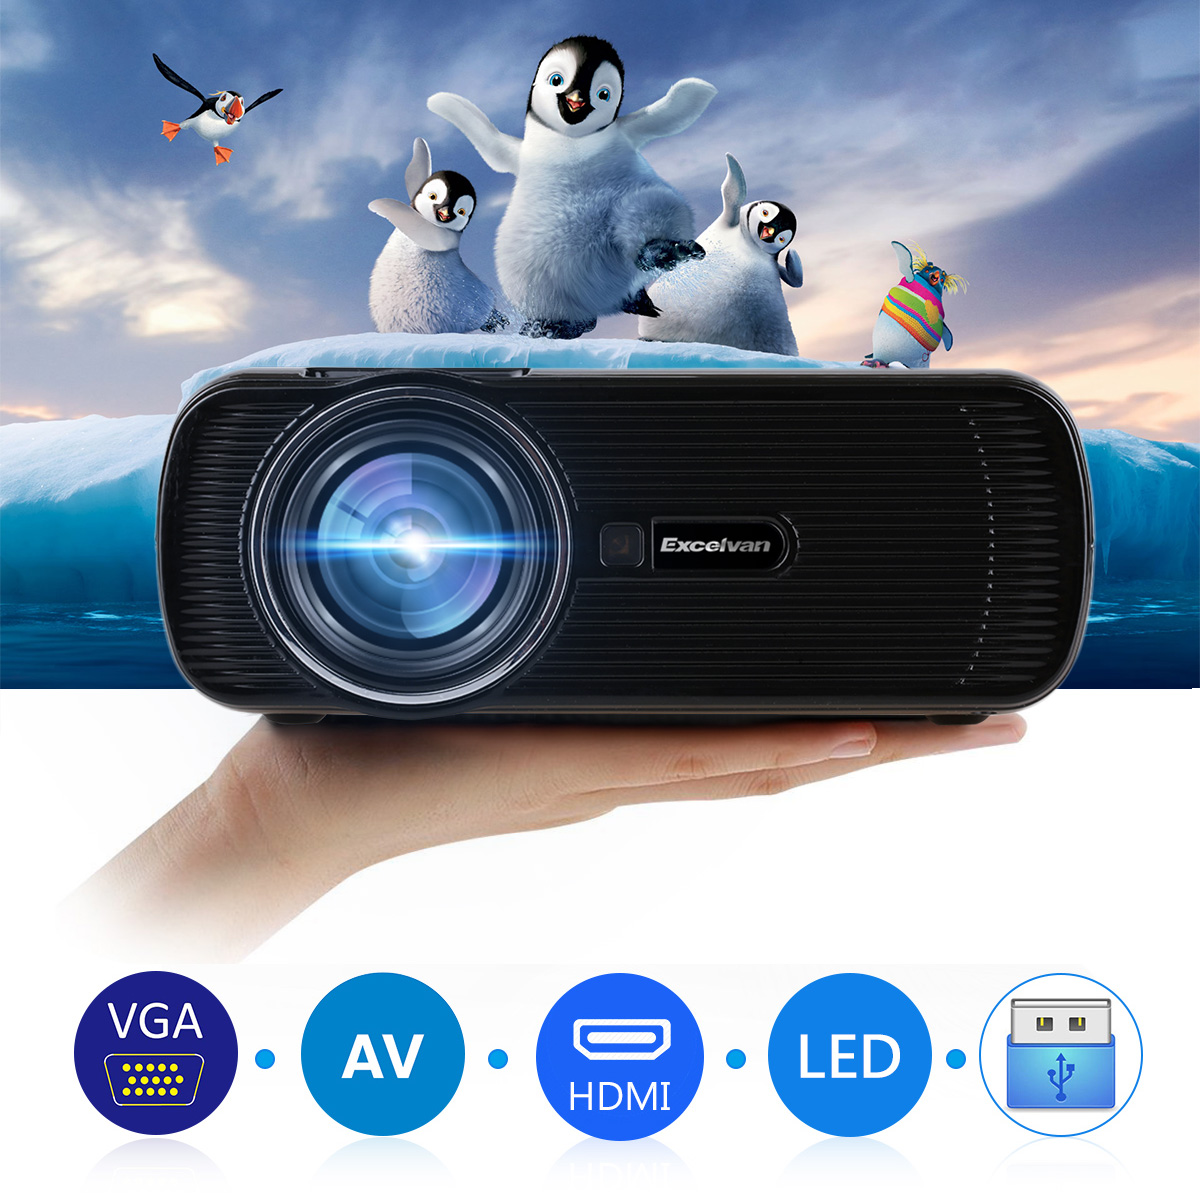 Excelvan mini portable Multimedia LCD LED Projector 800x480 pixels 1500 lumens Home theater cinema HDMI/USB/VGA/AV/ATV/SD